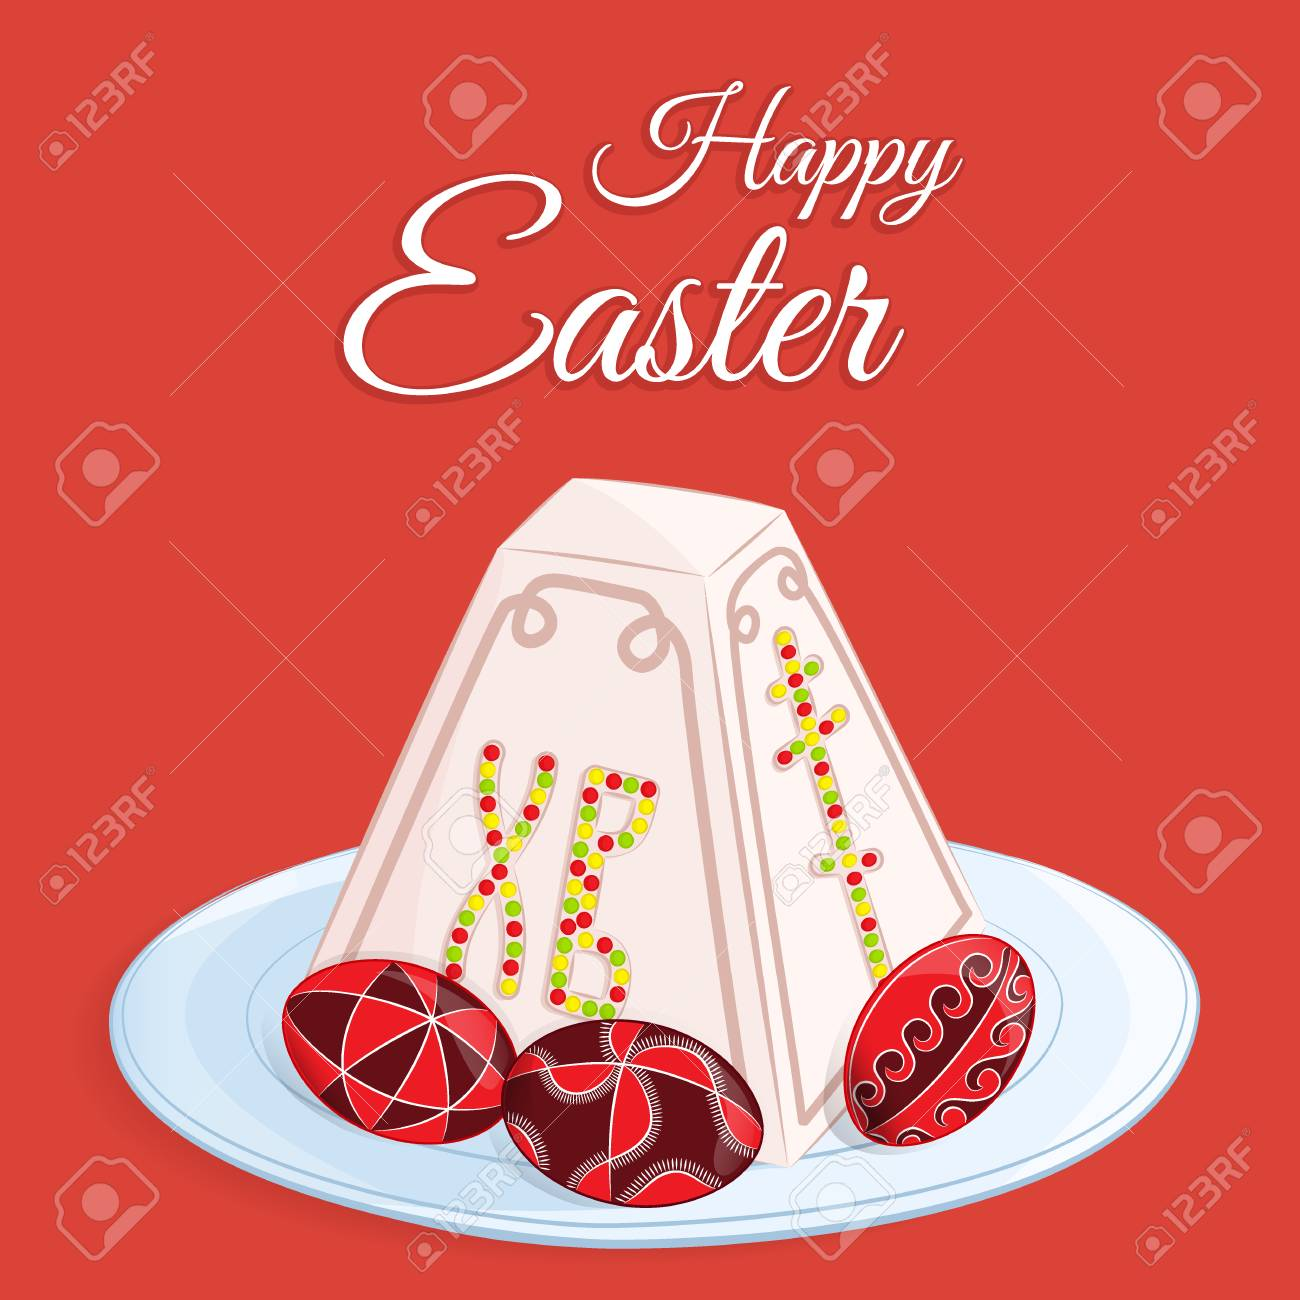 Orthodox easter festive greeting card vector cartoon illustration orthodox easter festive greeting card vector cartoon illustration of a traditional curd dessert called the m4hsunfo Images